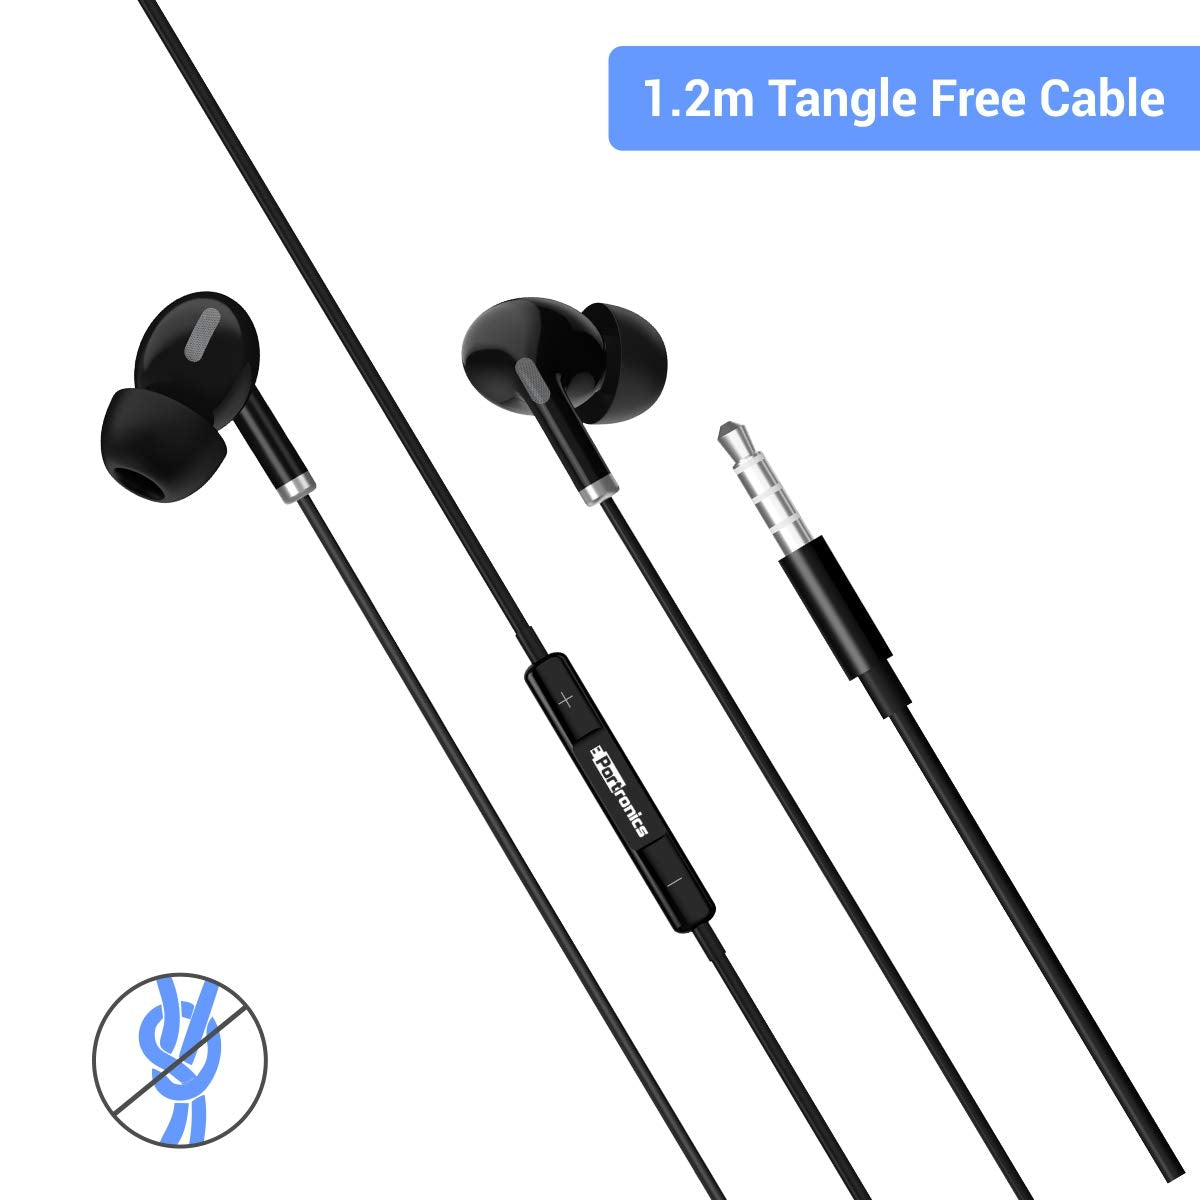 Portronics Conch Delta POR-1155 in-Ear Wired Earphone, 1.2m Tangle Free Cable, in-Line Mic, Noise Reduction, 3.5mm Aux Port and High Bass, for All Android & iOS Devices(Black)